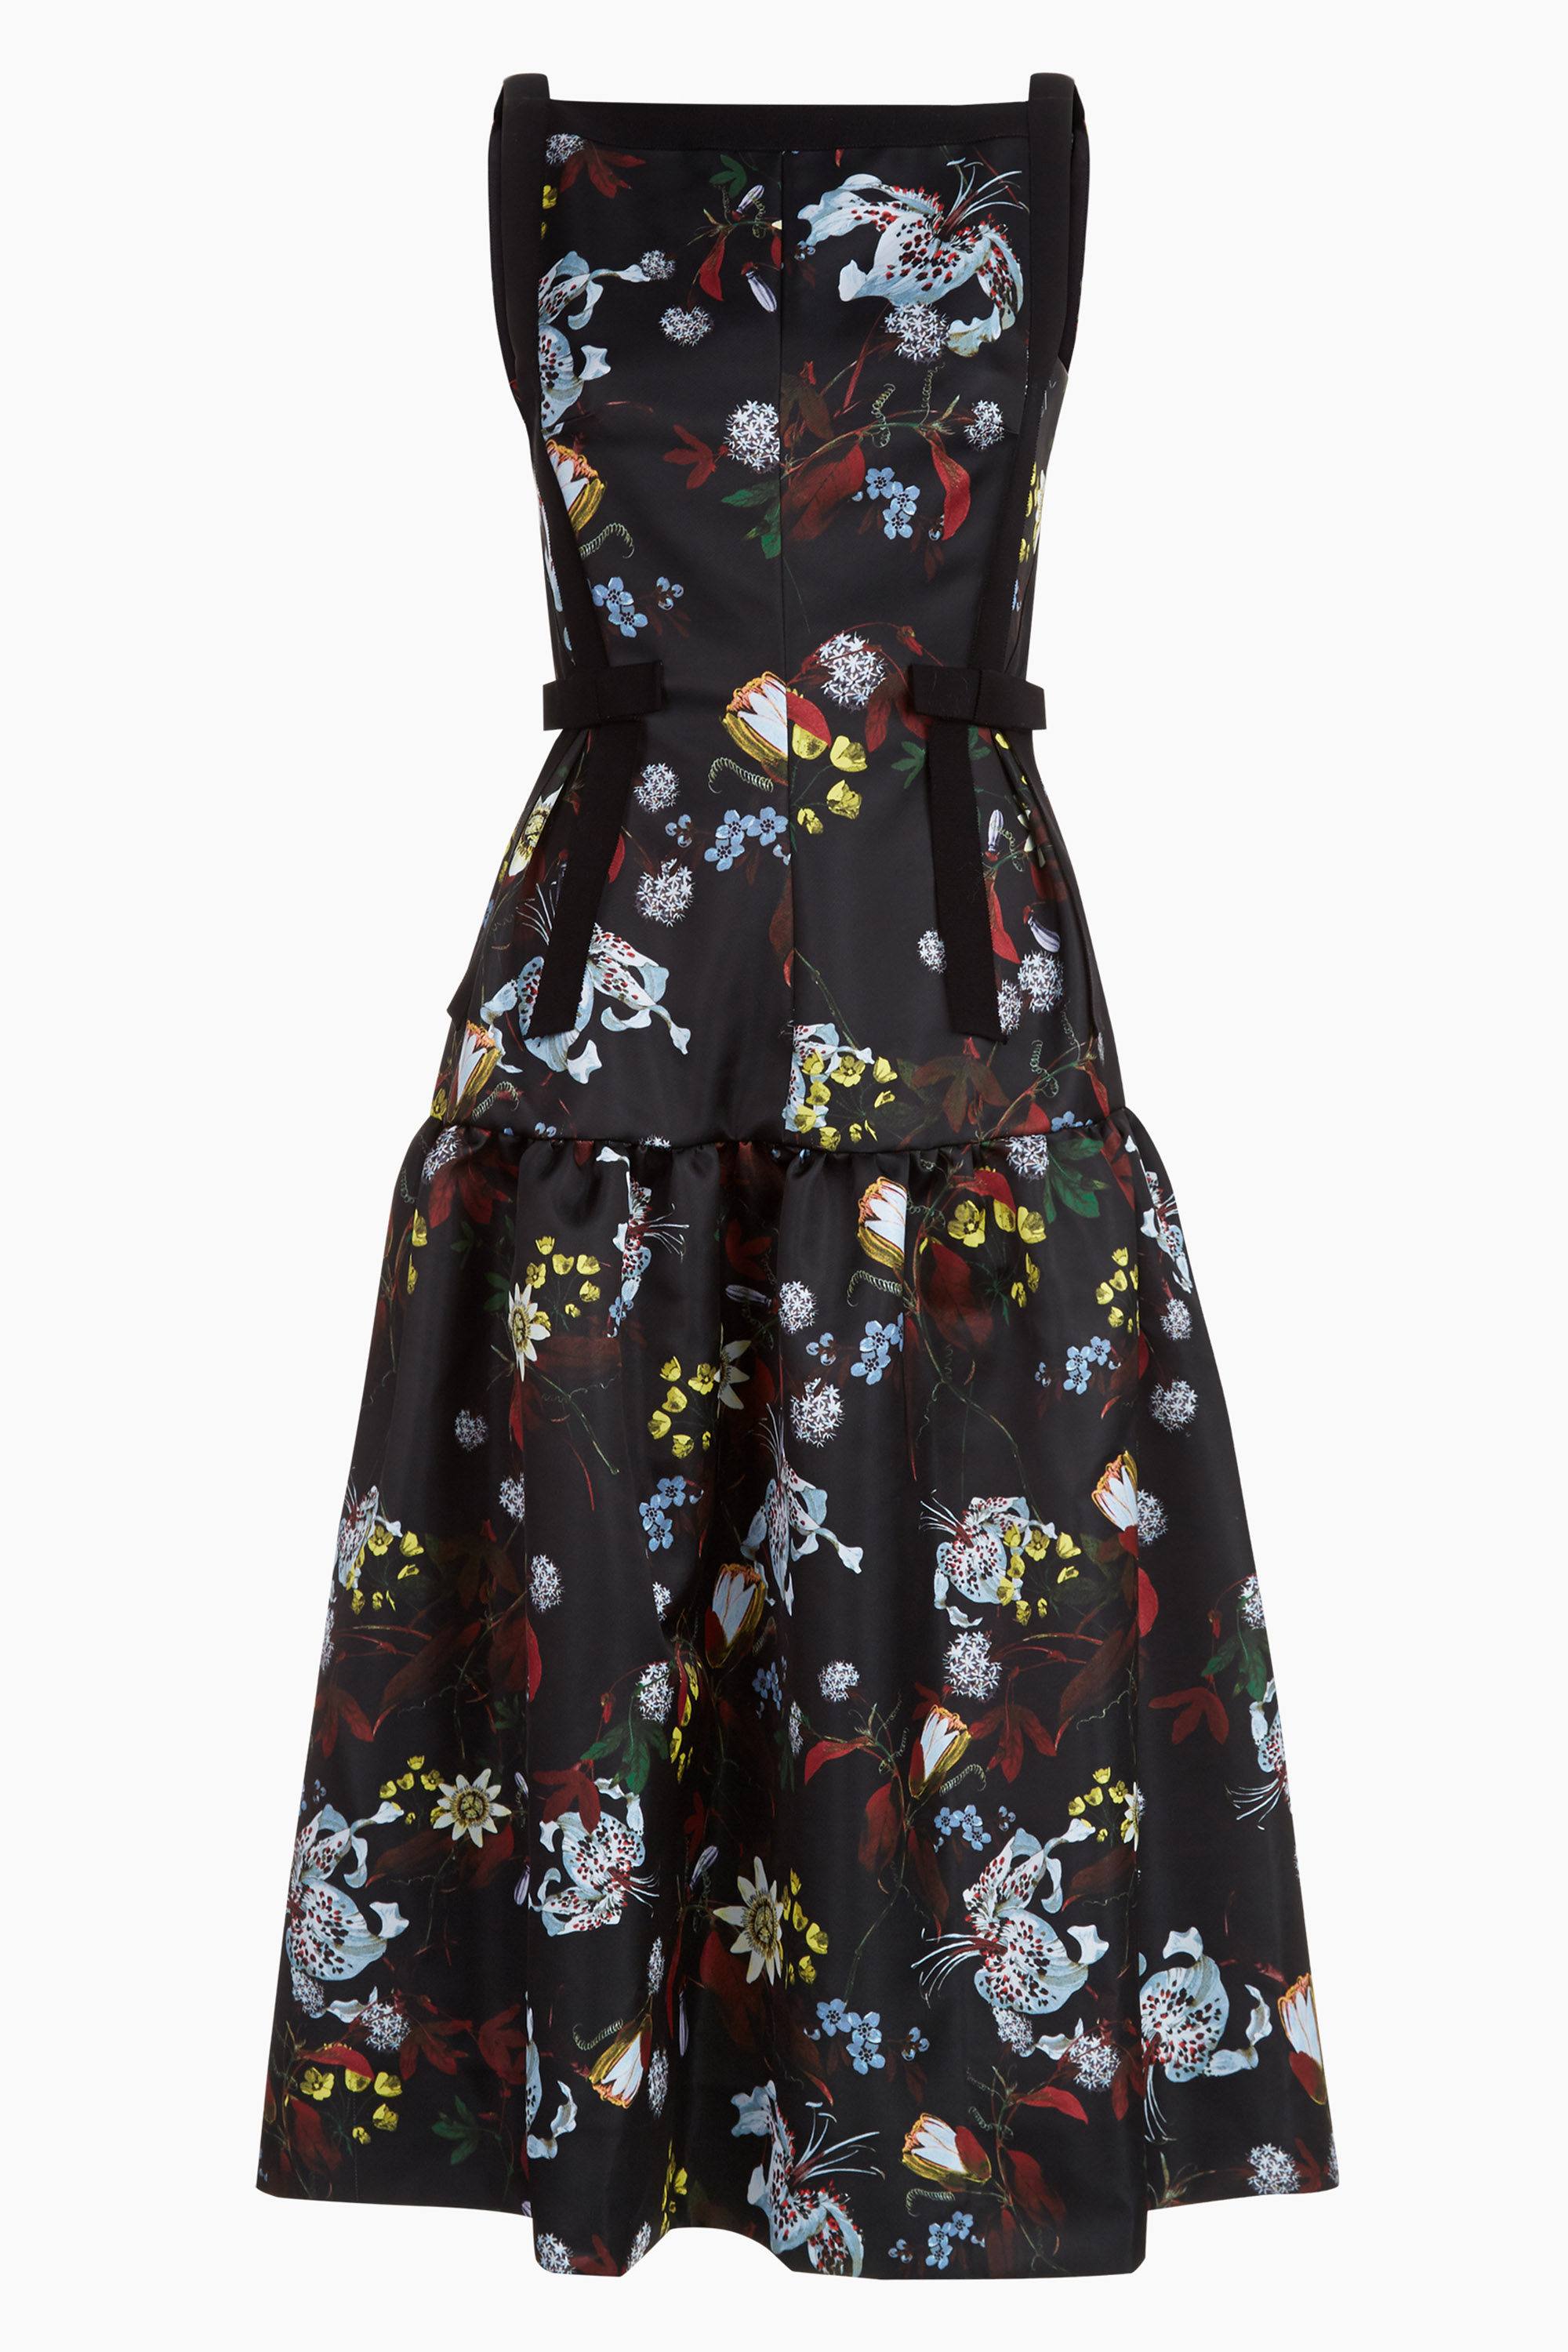 Winter Dresses For Wedding Guest